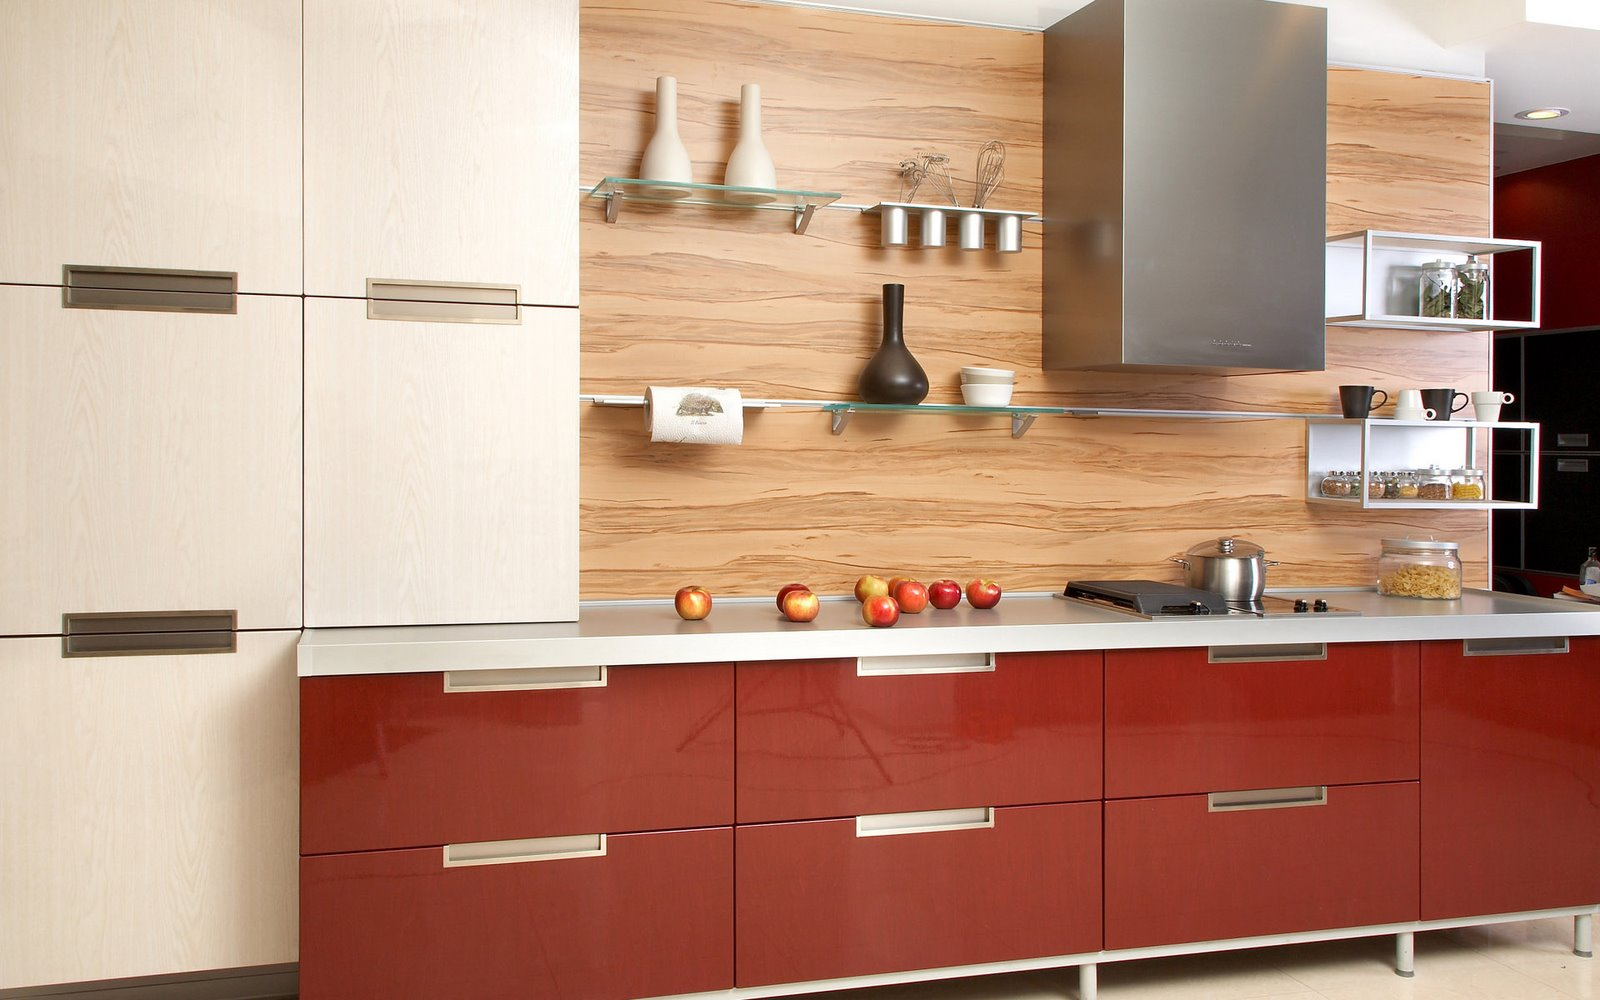 Modern wood kitchen design dream kitchens pinterest for Pics of modern kitchen designs